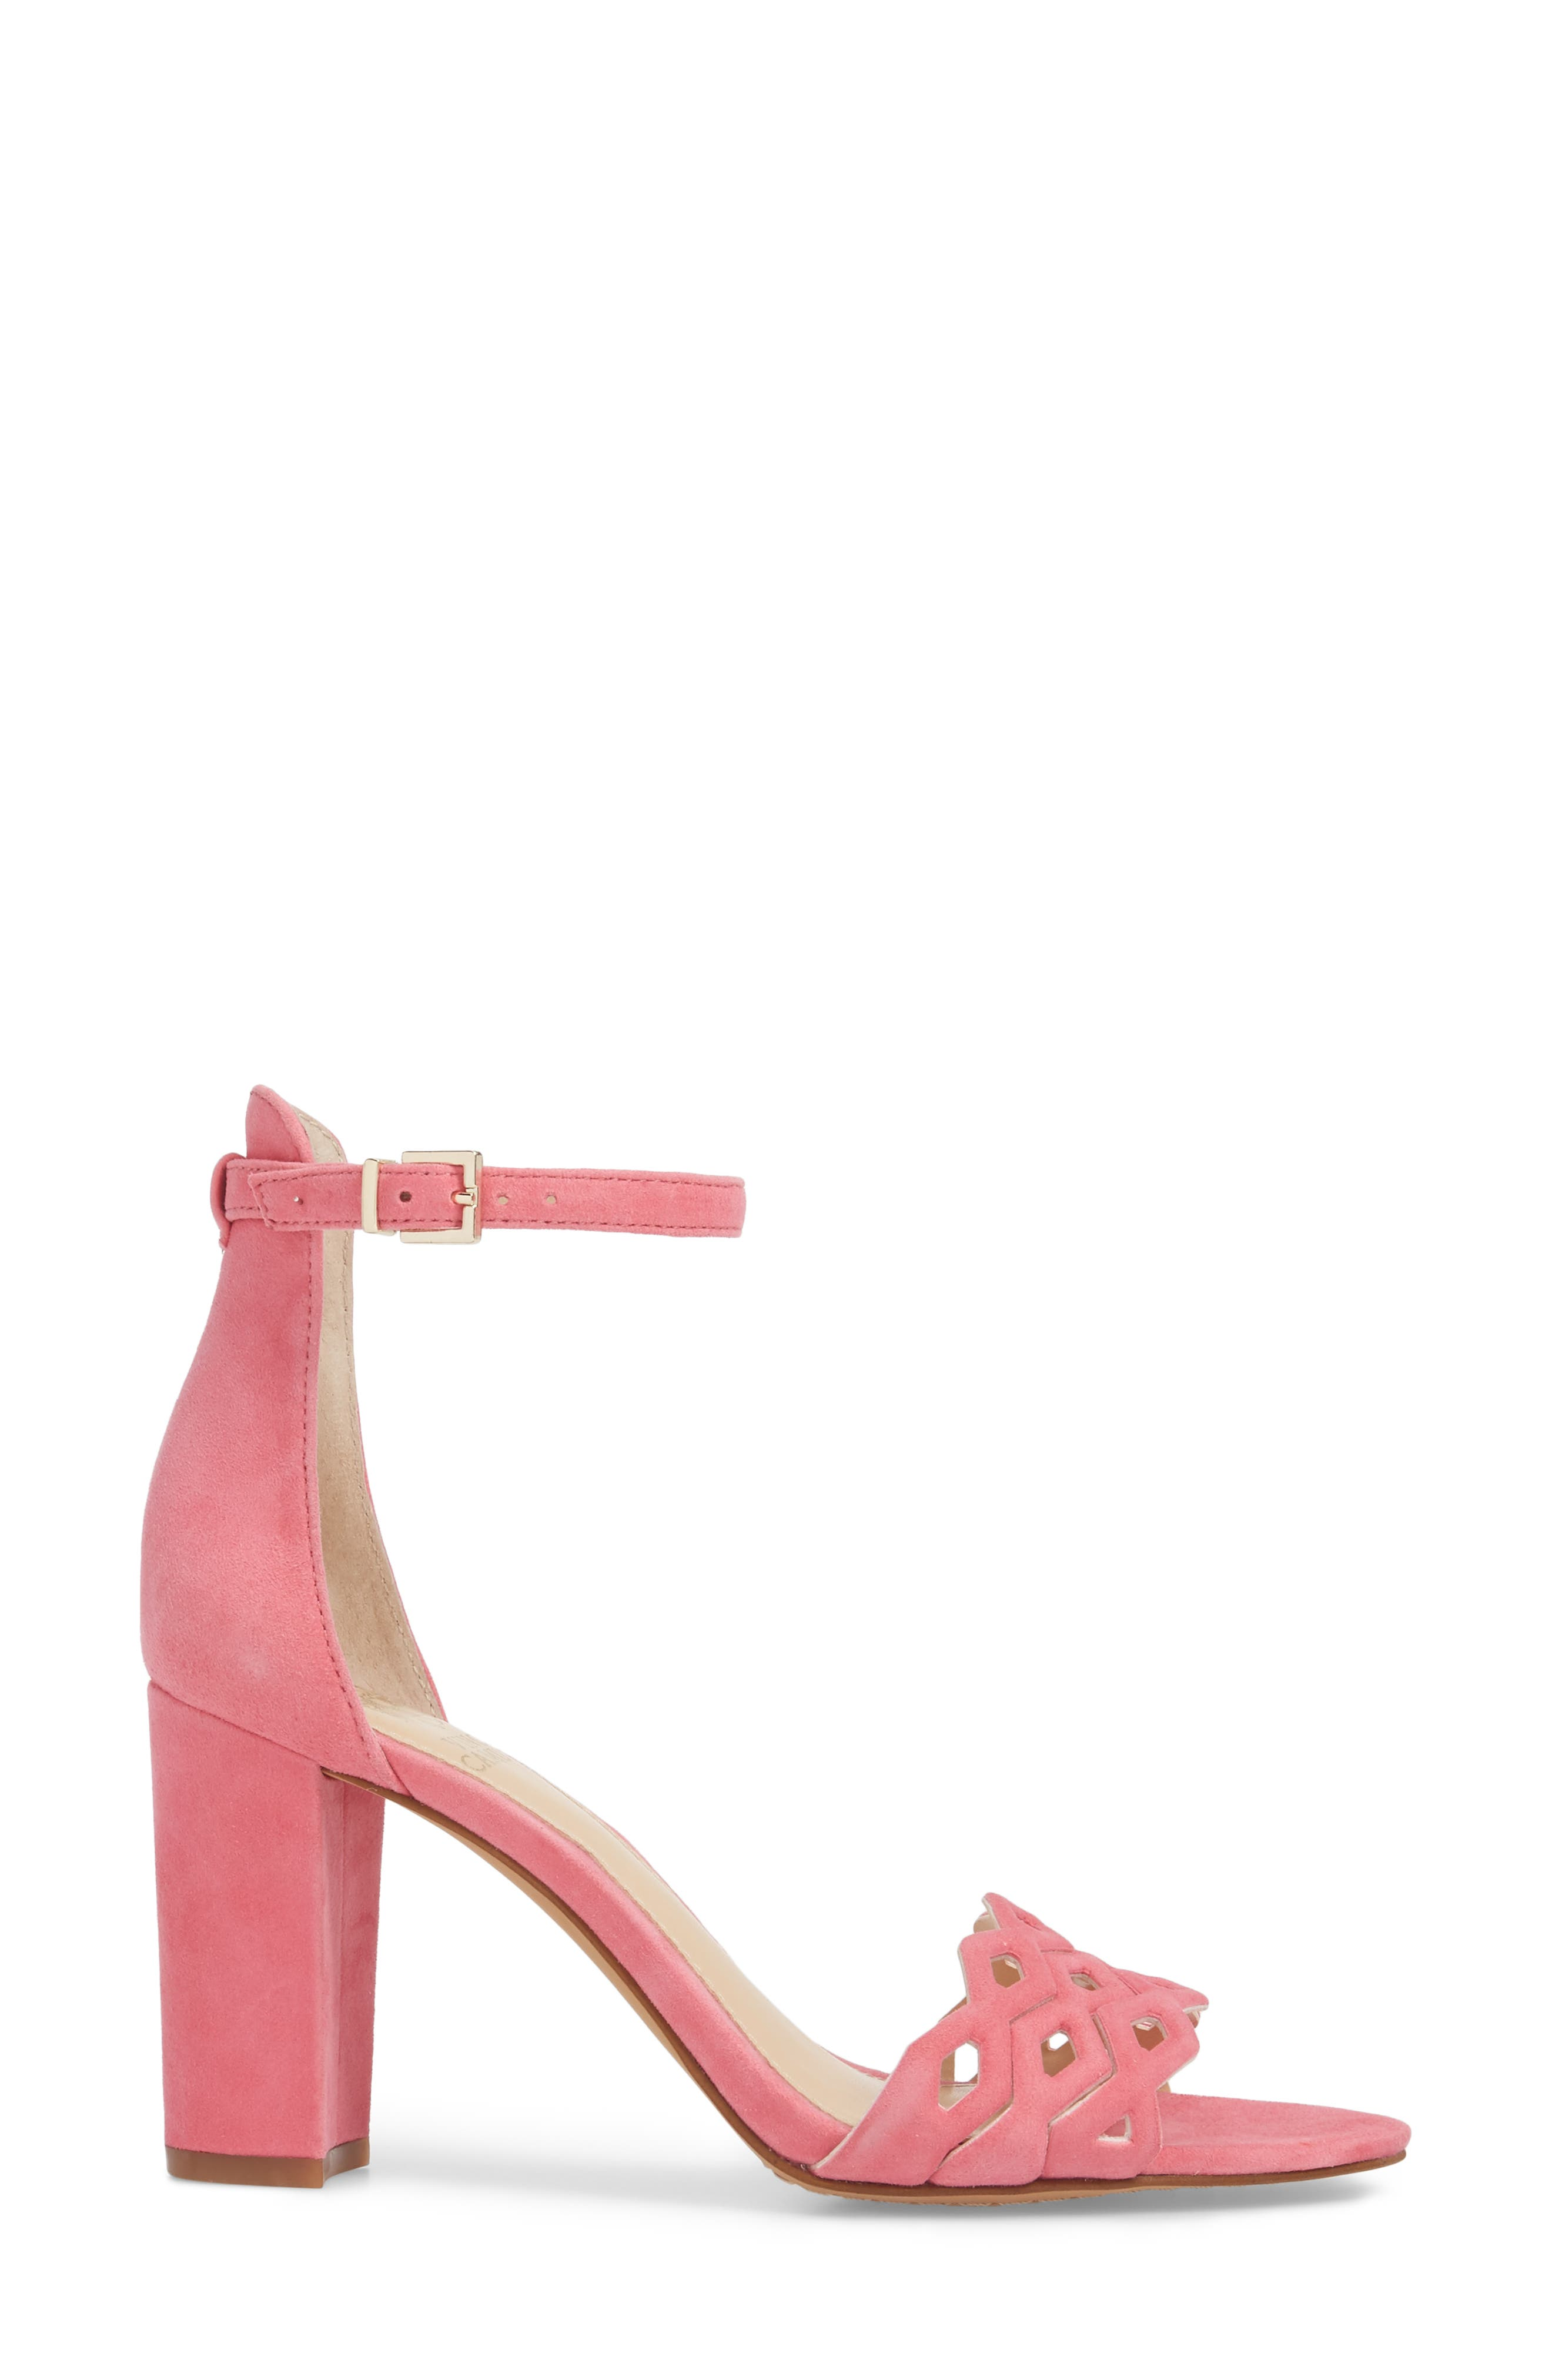 Caveena Block Heel Sandal,                             Alternate thumbnail 3, color,                             Soft Pink Suede